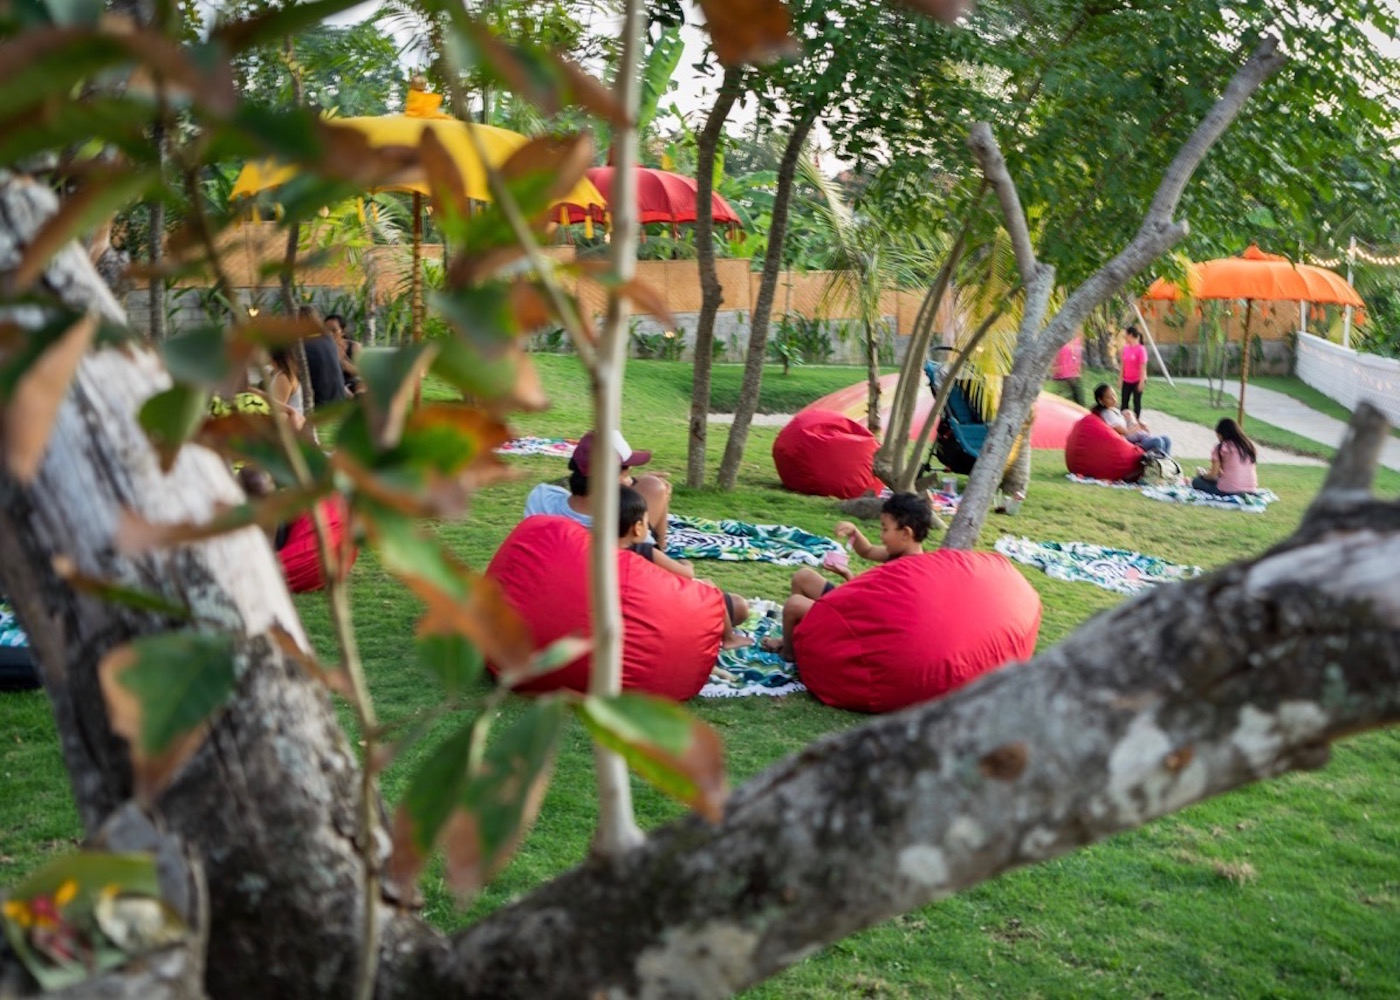 Parklife-a-family-friendly-playground-restaurant-park-for-kids-in-Canggu-Bali-Indonesia-3.jpg